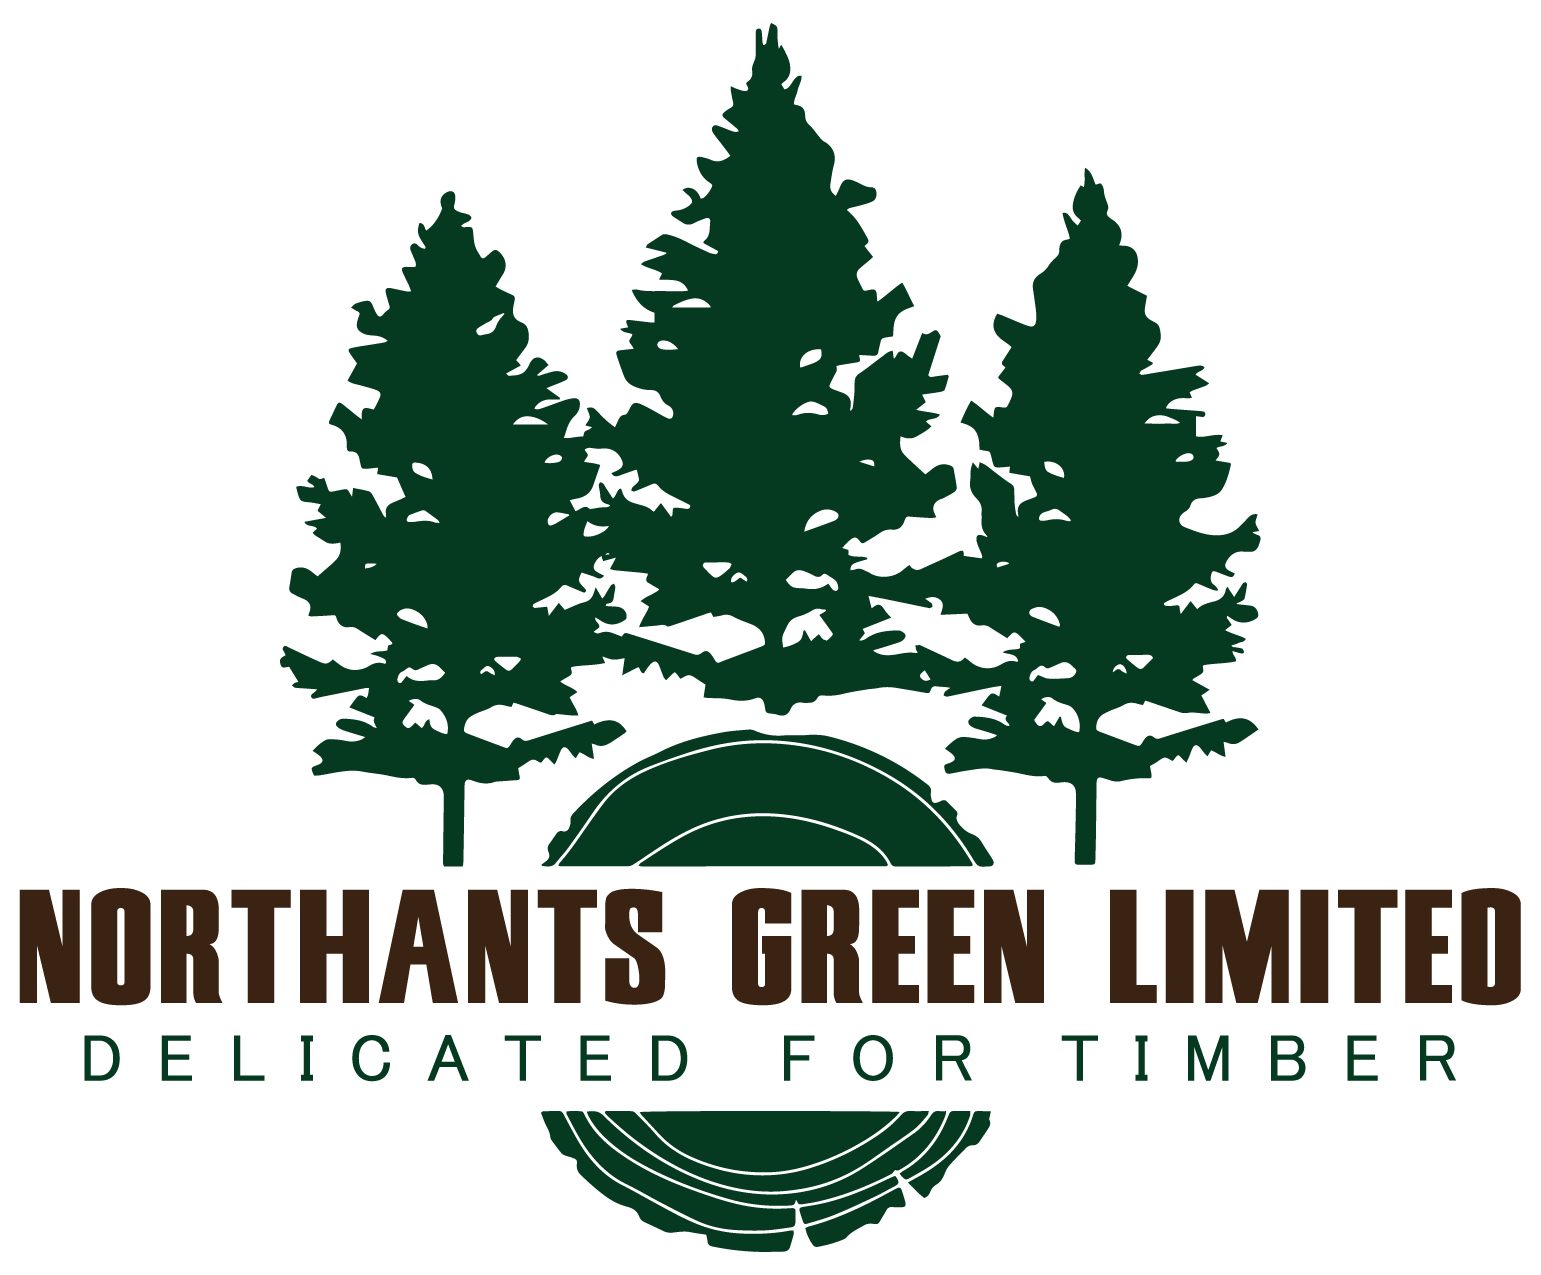 Northants Green Limited